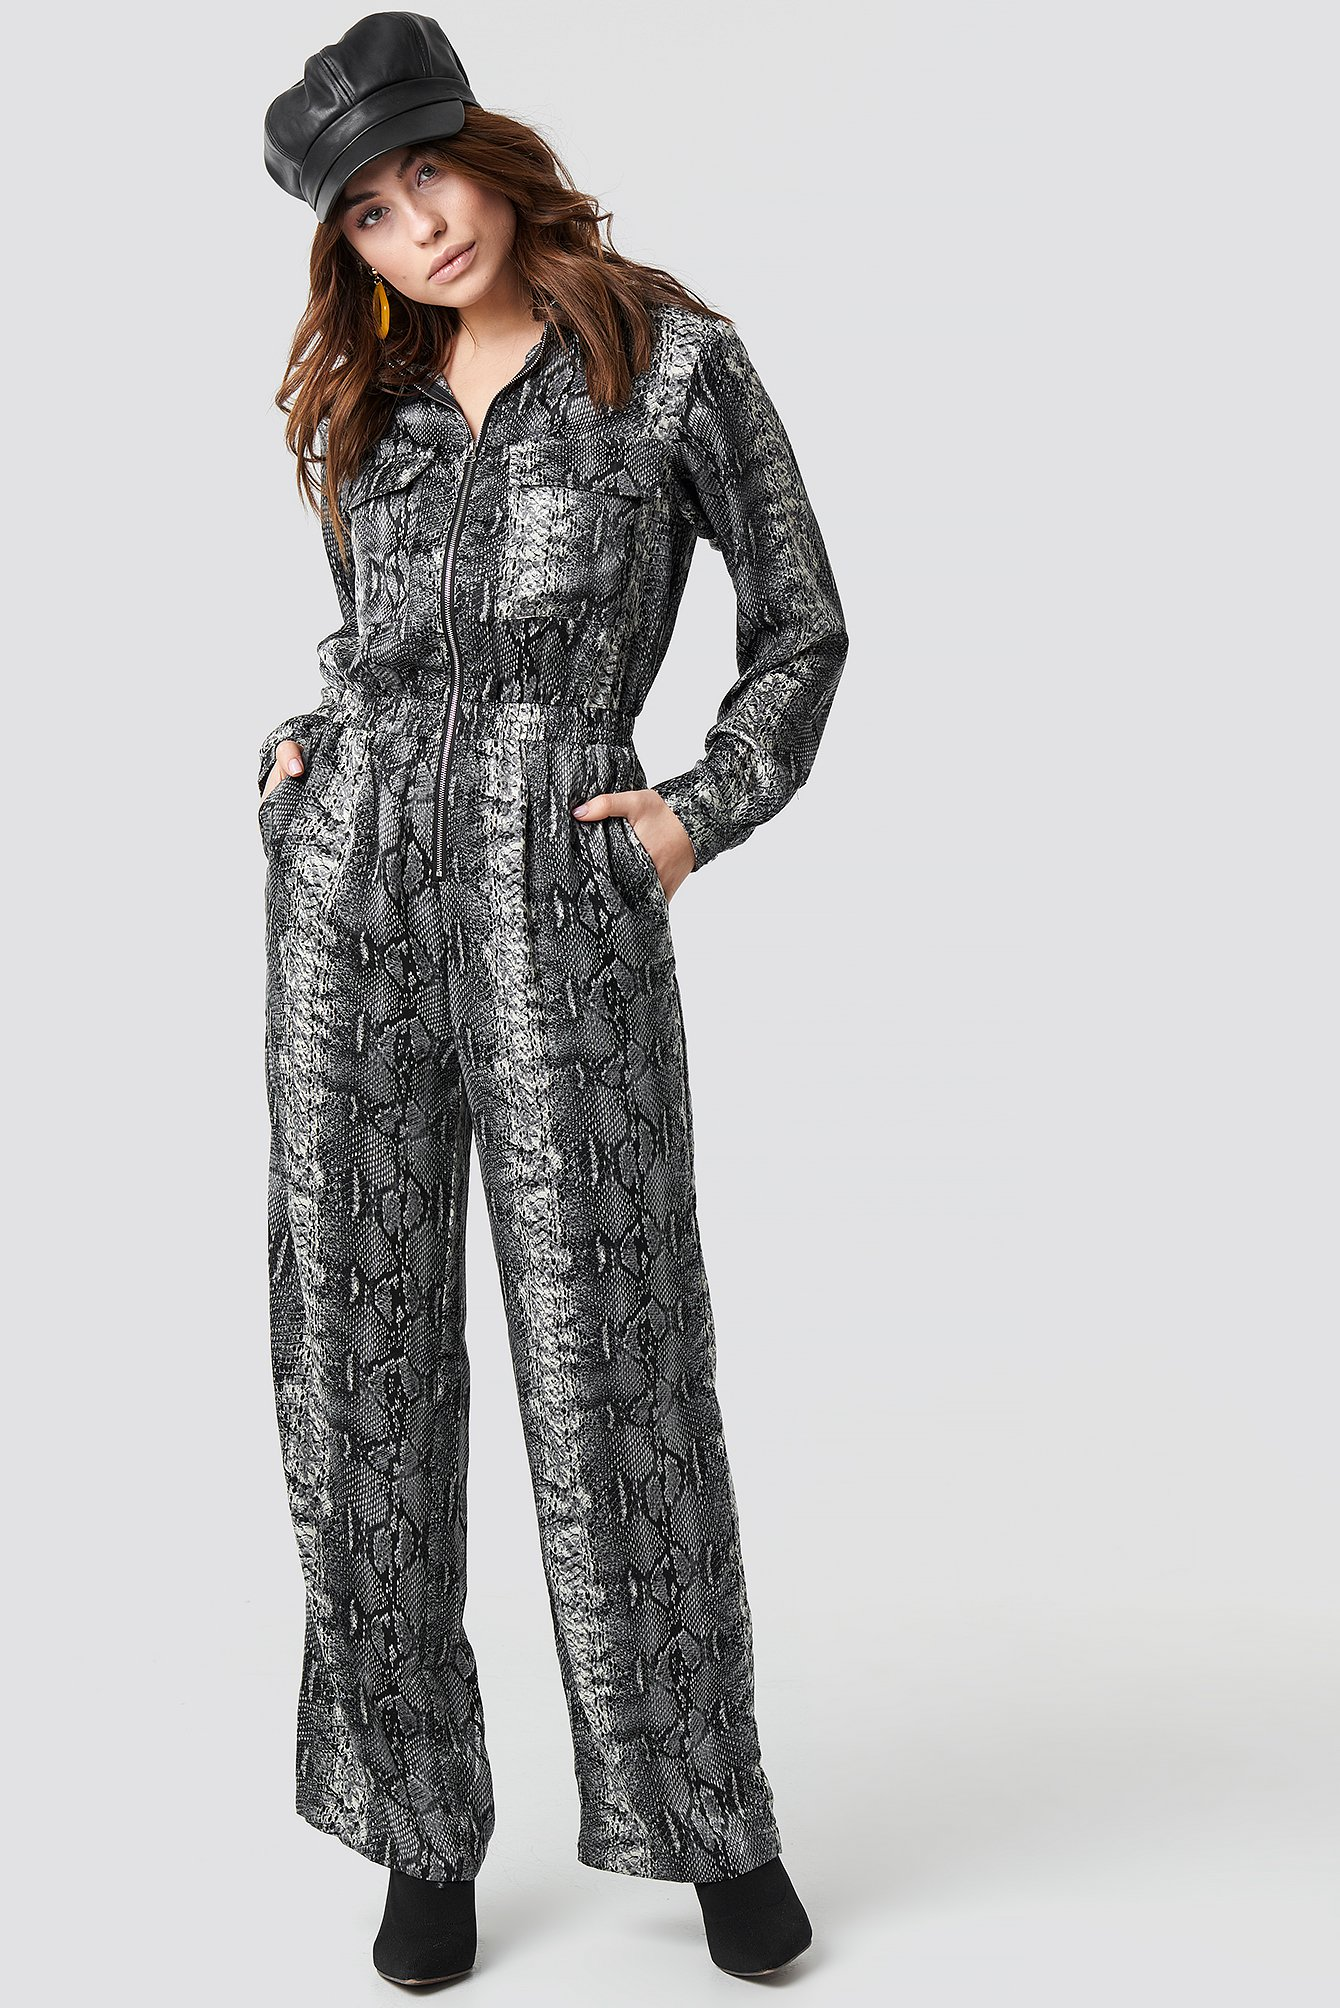 moves -  Nibia Snake Jumpsuit - Black,Grey,Multicolor